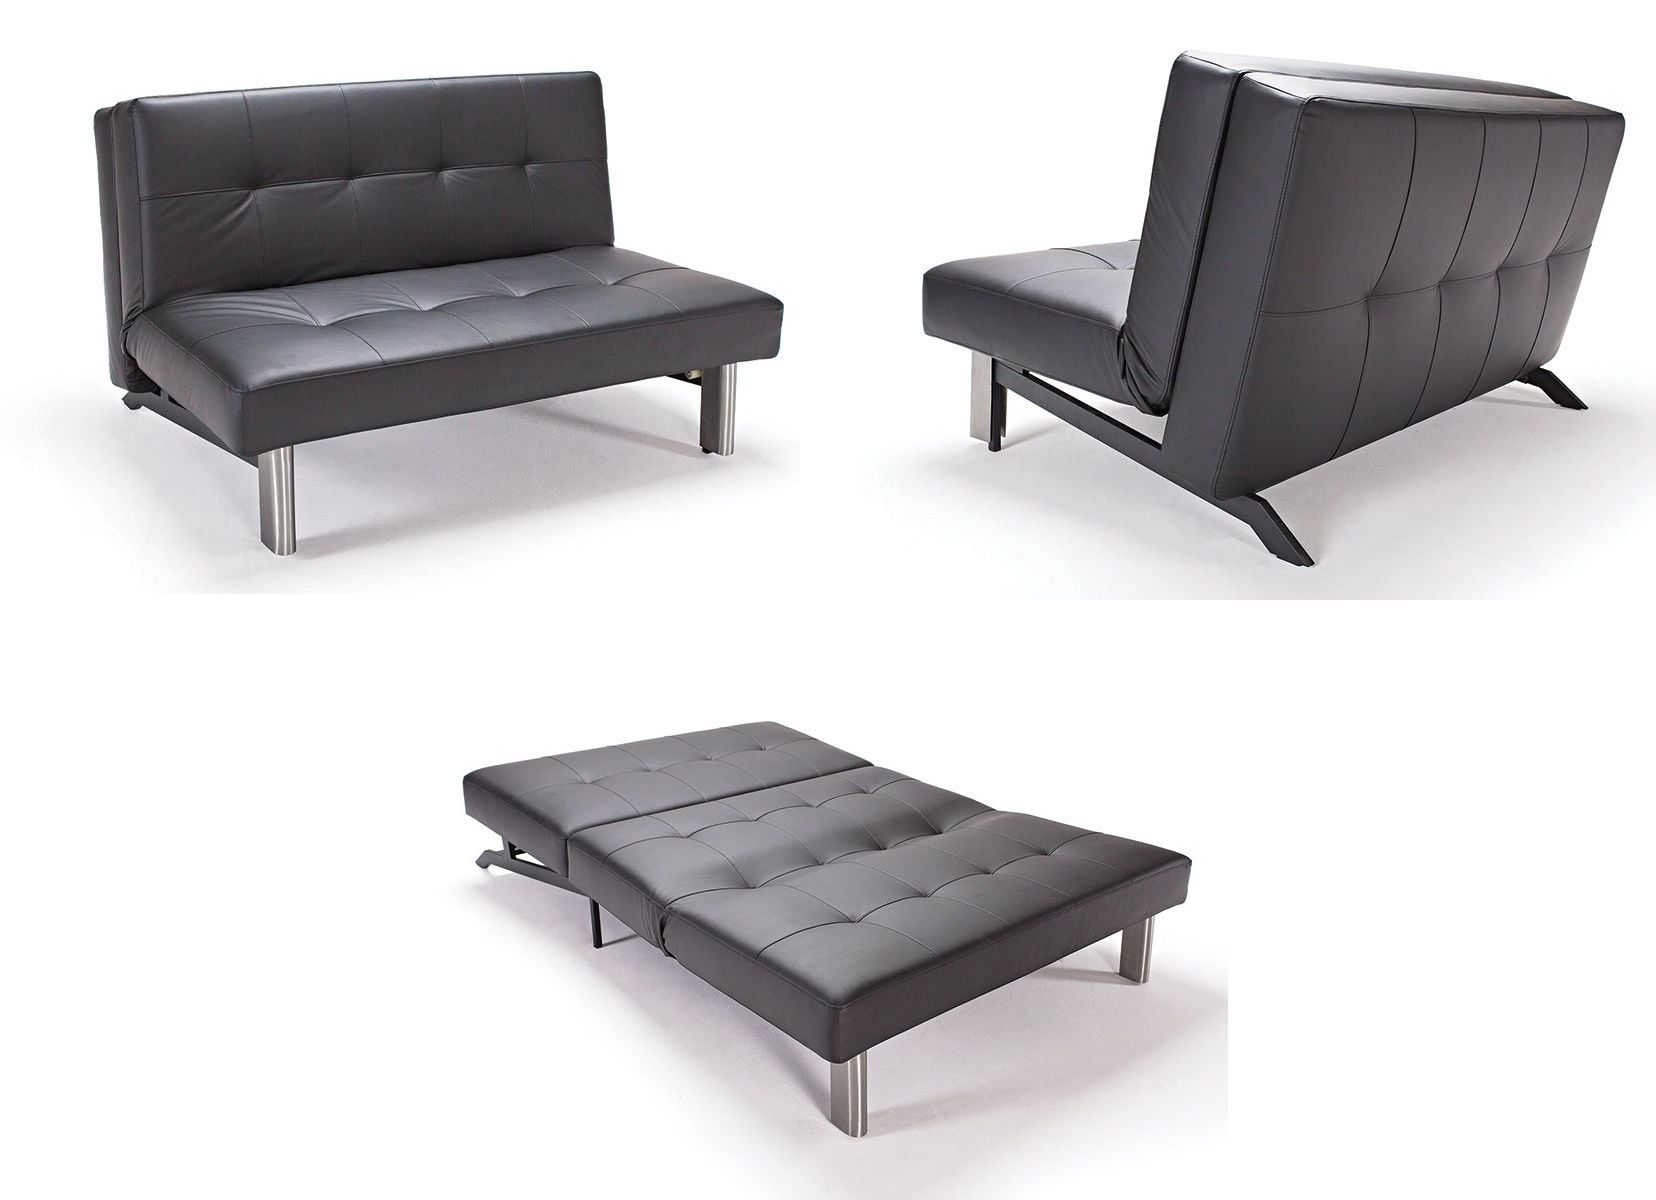 The modern Tjaze sofa from Innovation USA is an innovative, compact sofa  bed design #